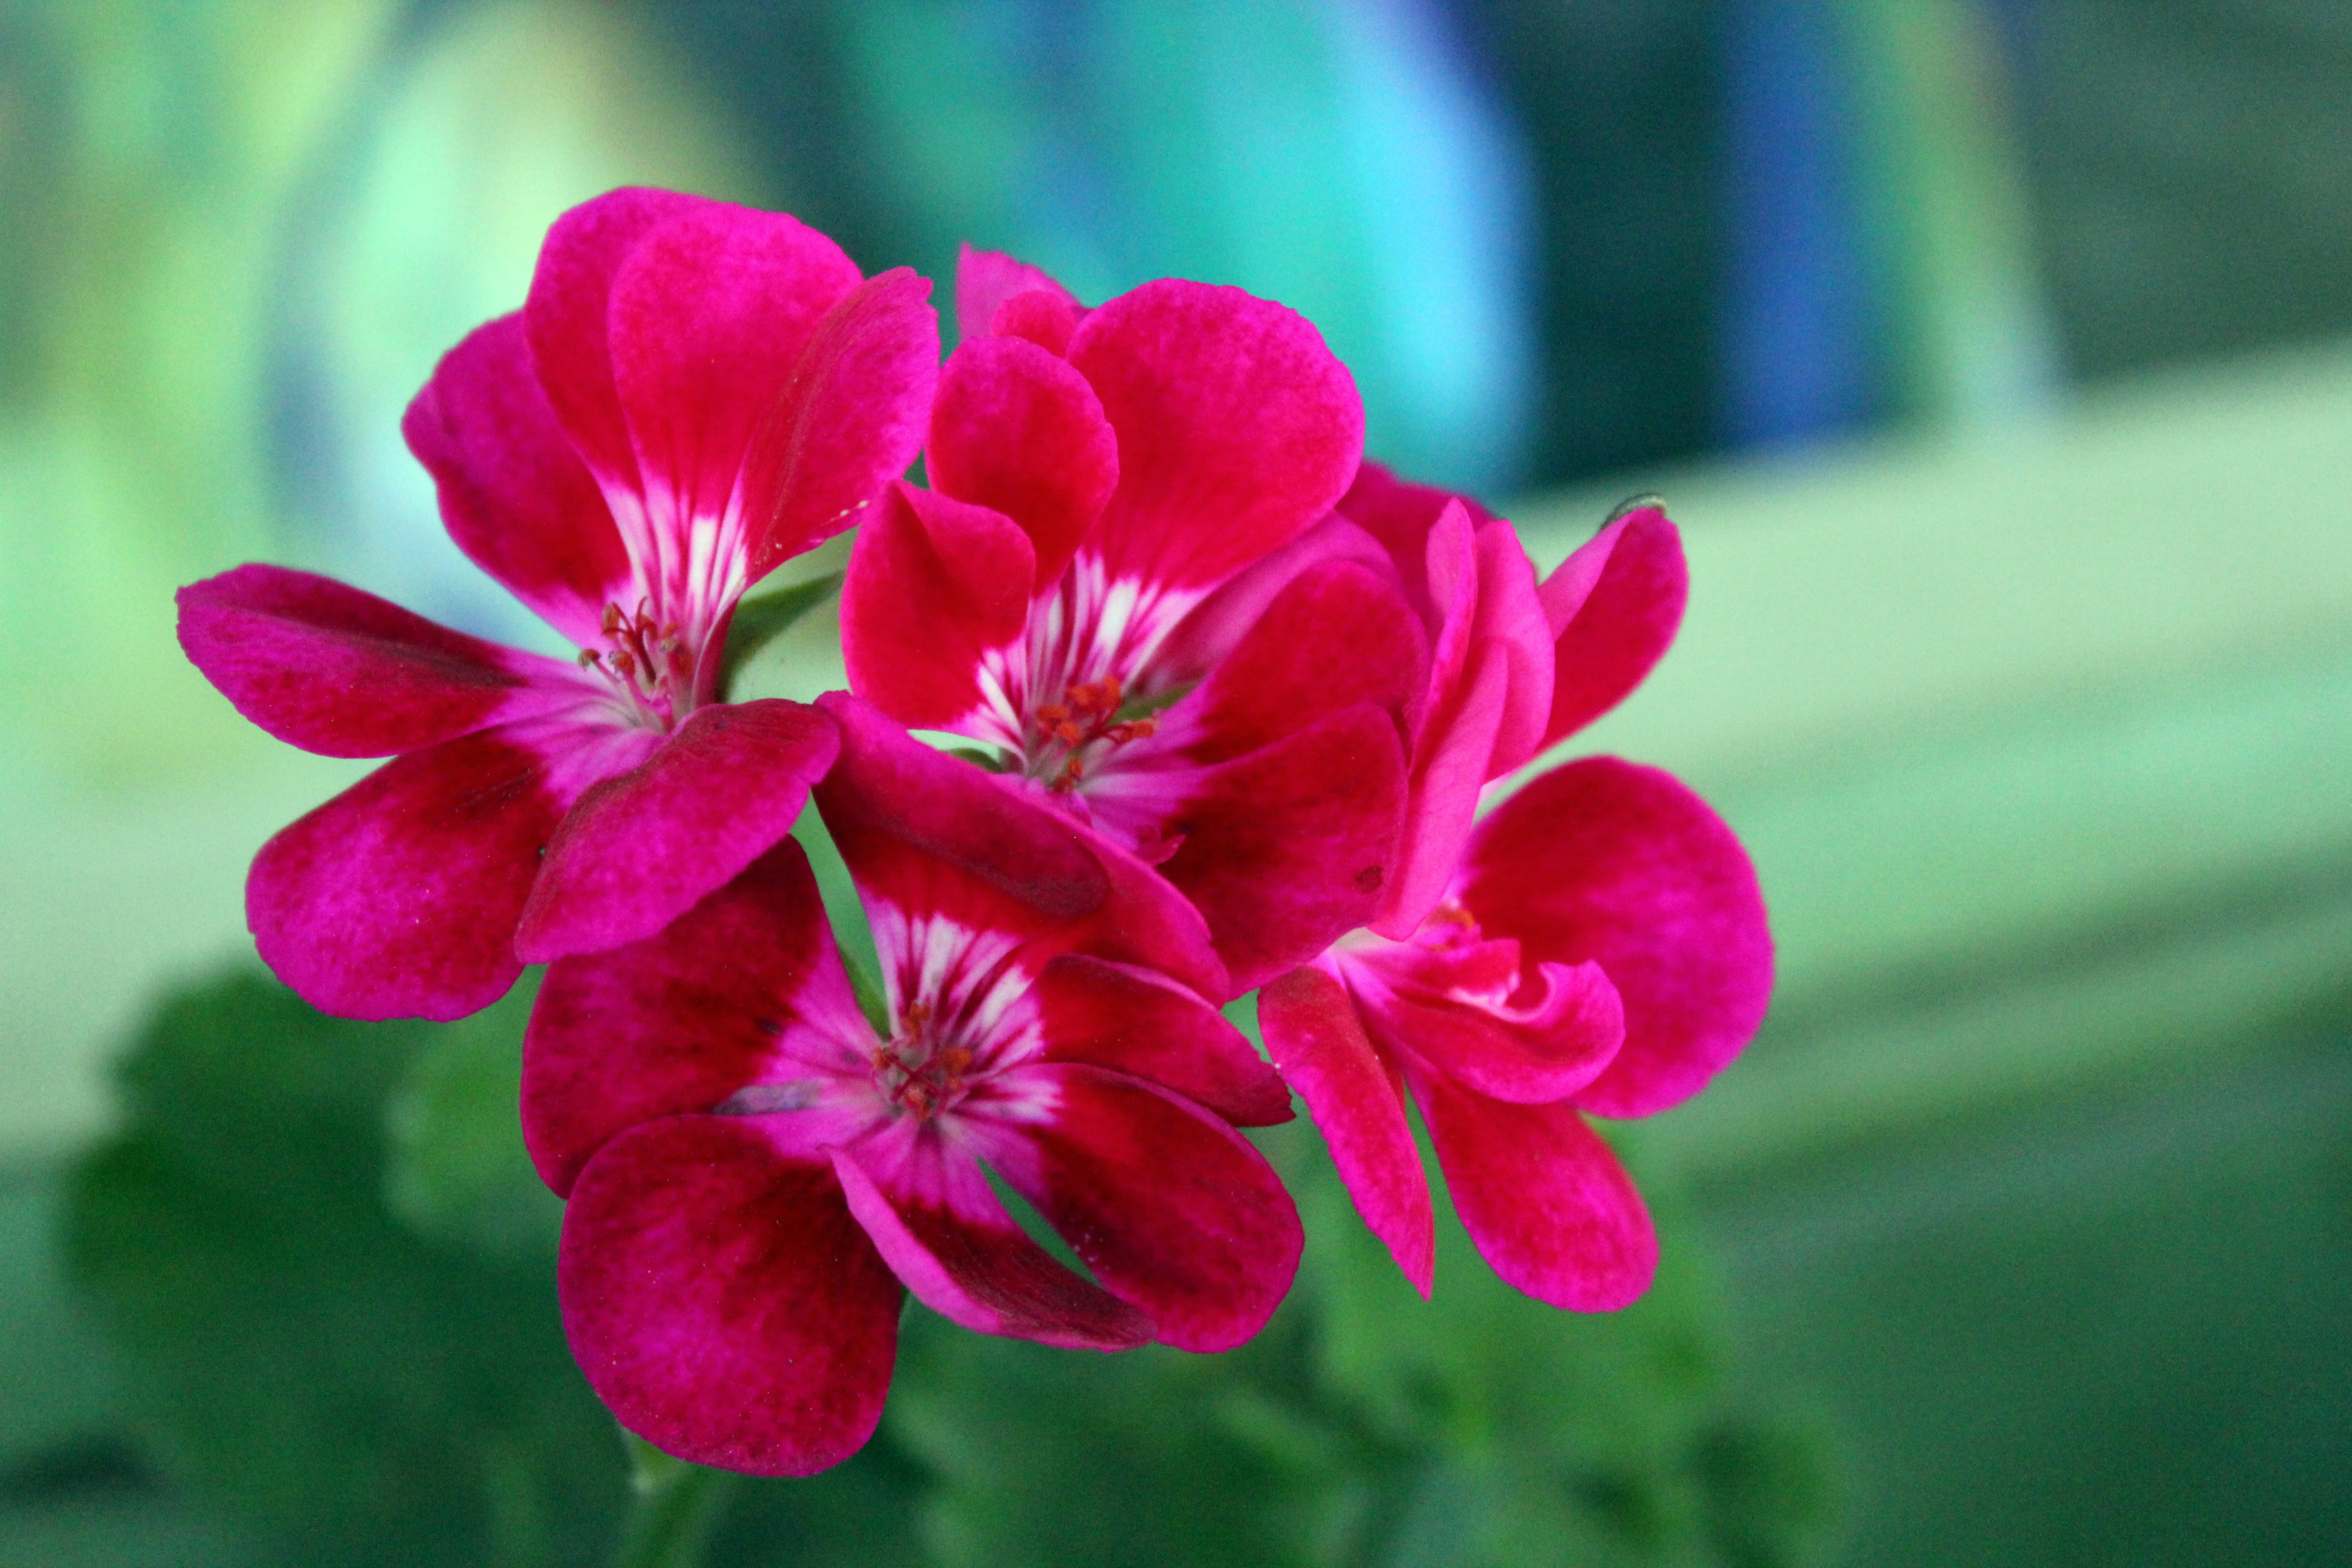 Free stock photo of red flowers